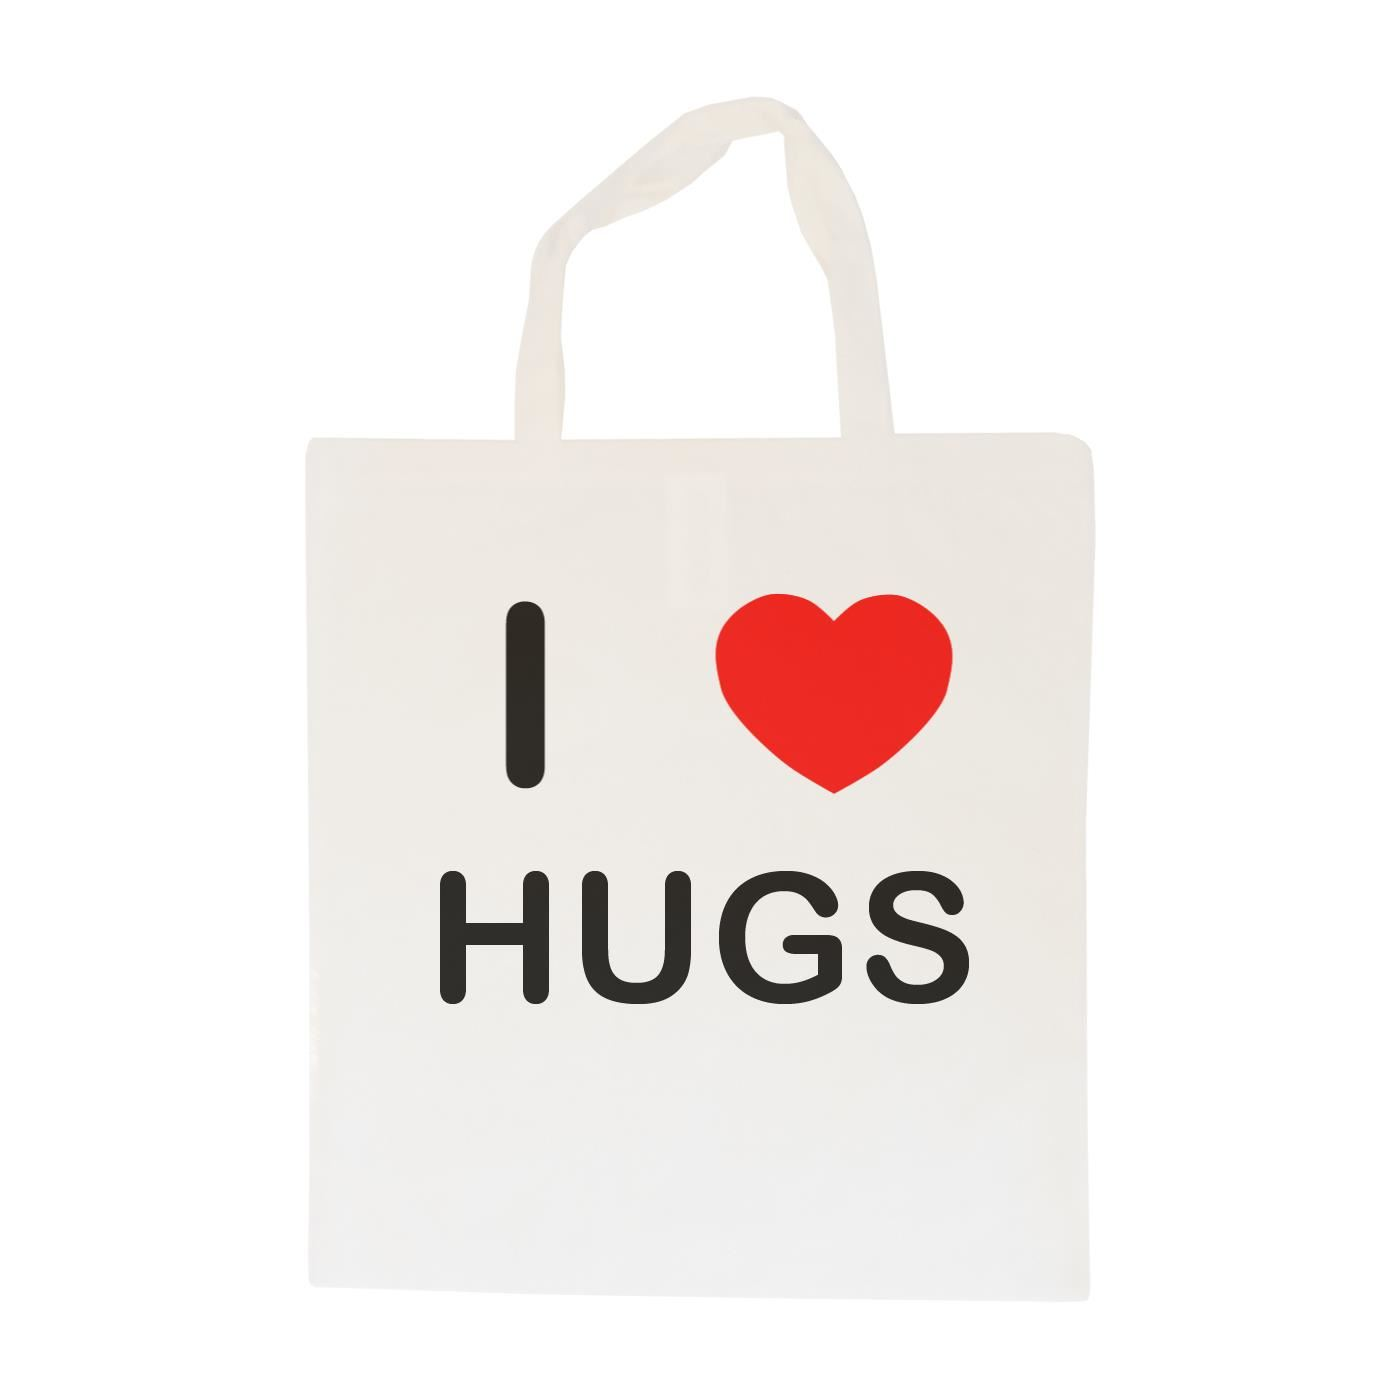 I Love Hugs - Cotton Bag | Size choice Tote, Shopper or Sling